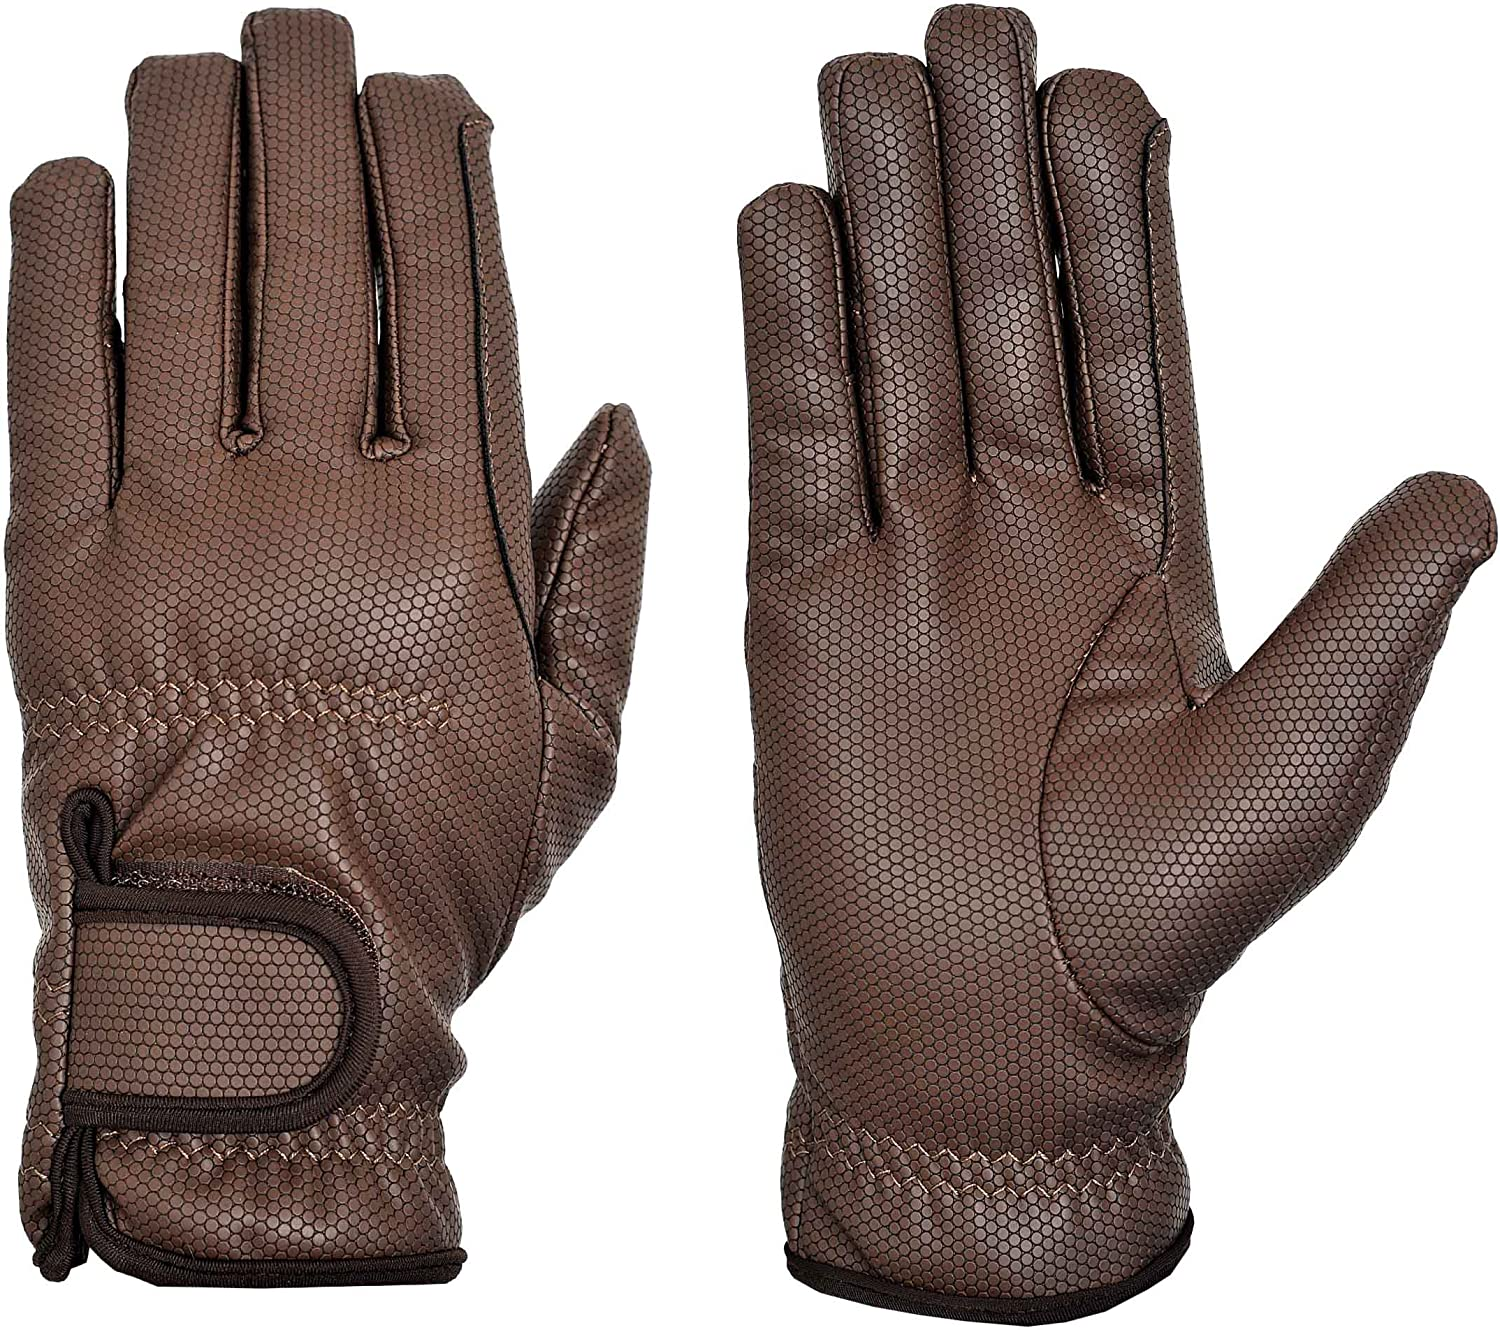 Guantes de equitaci/ón Riders Trend Embossed Synthetic PU Riding Gloves